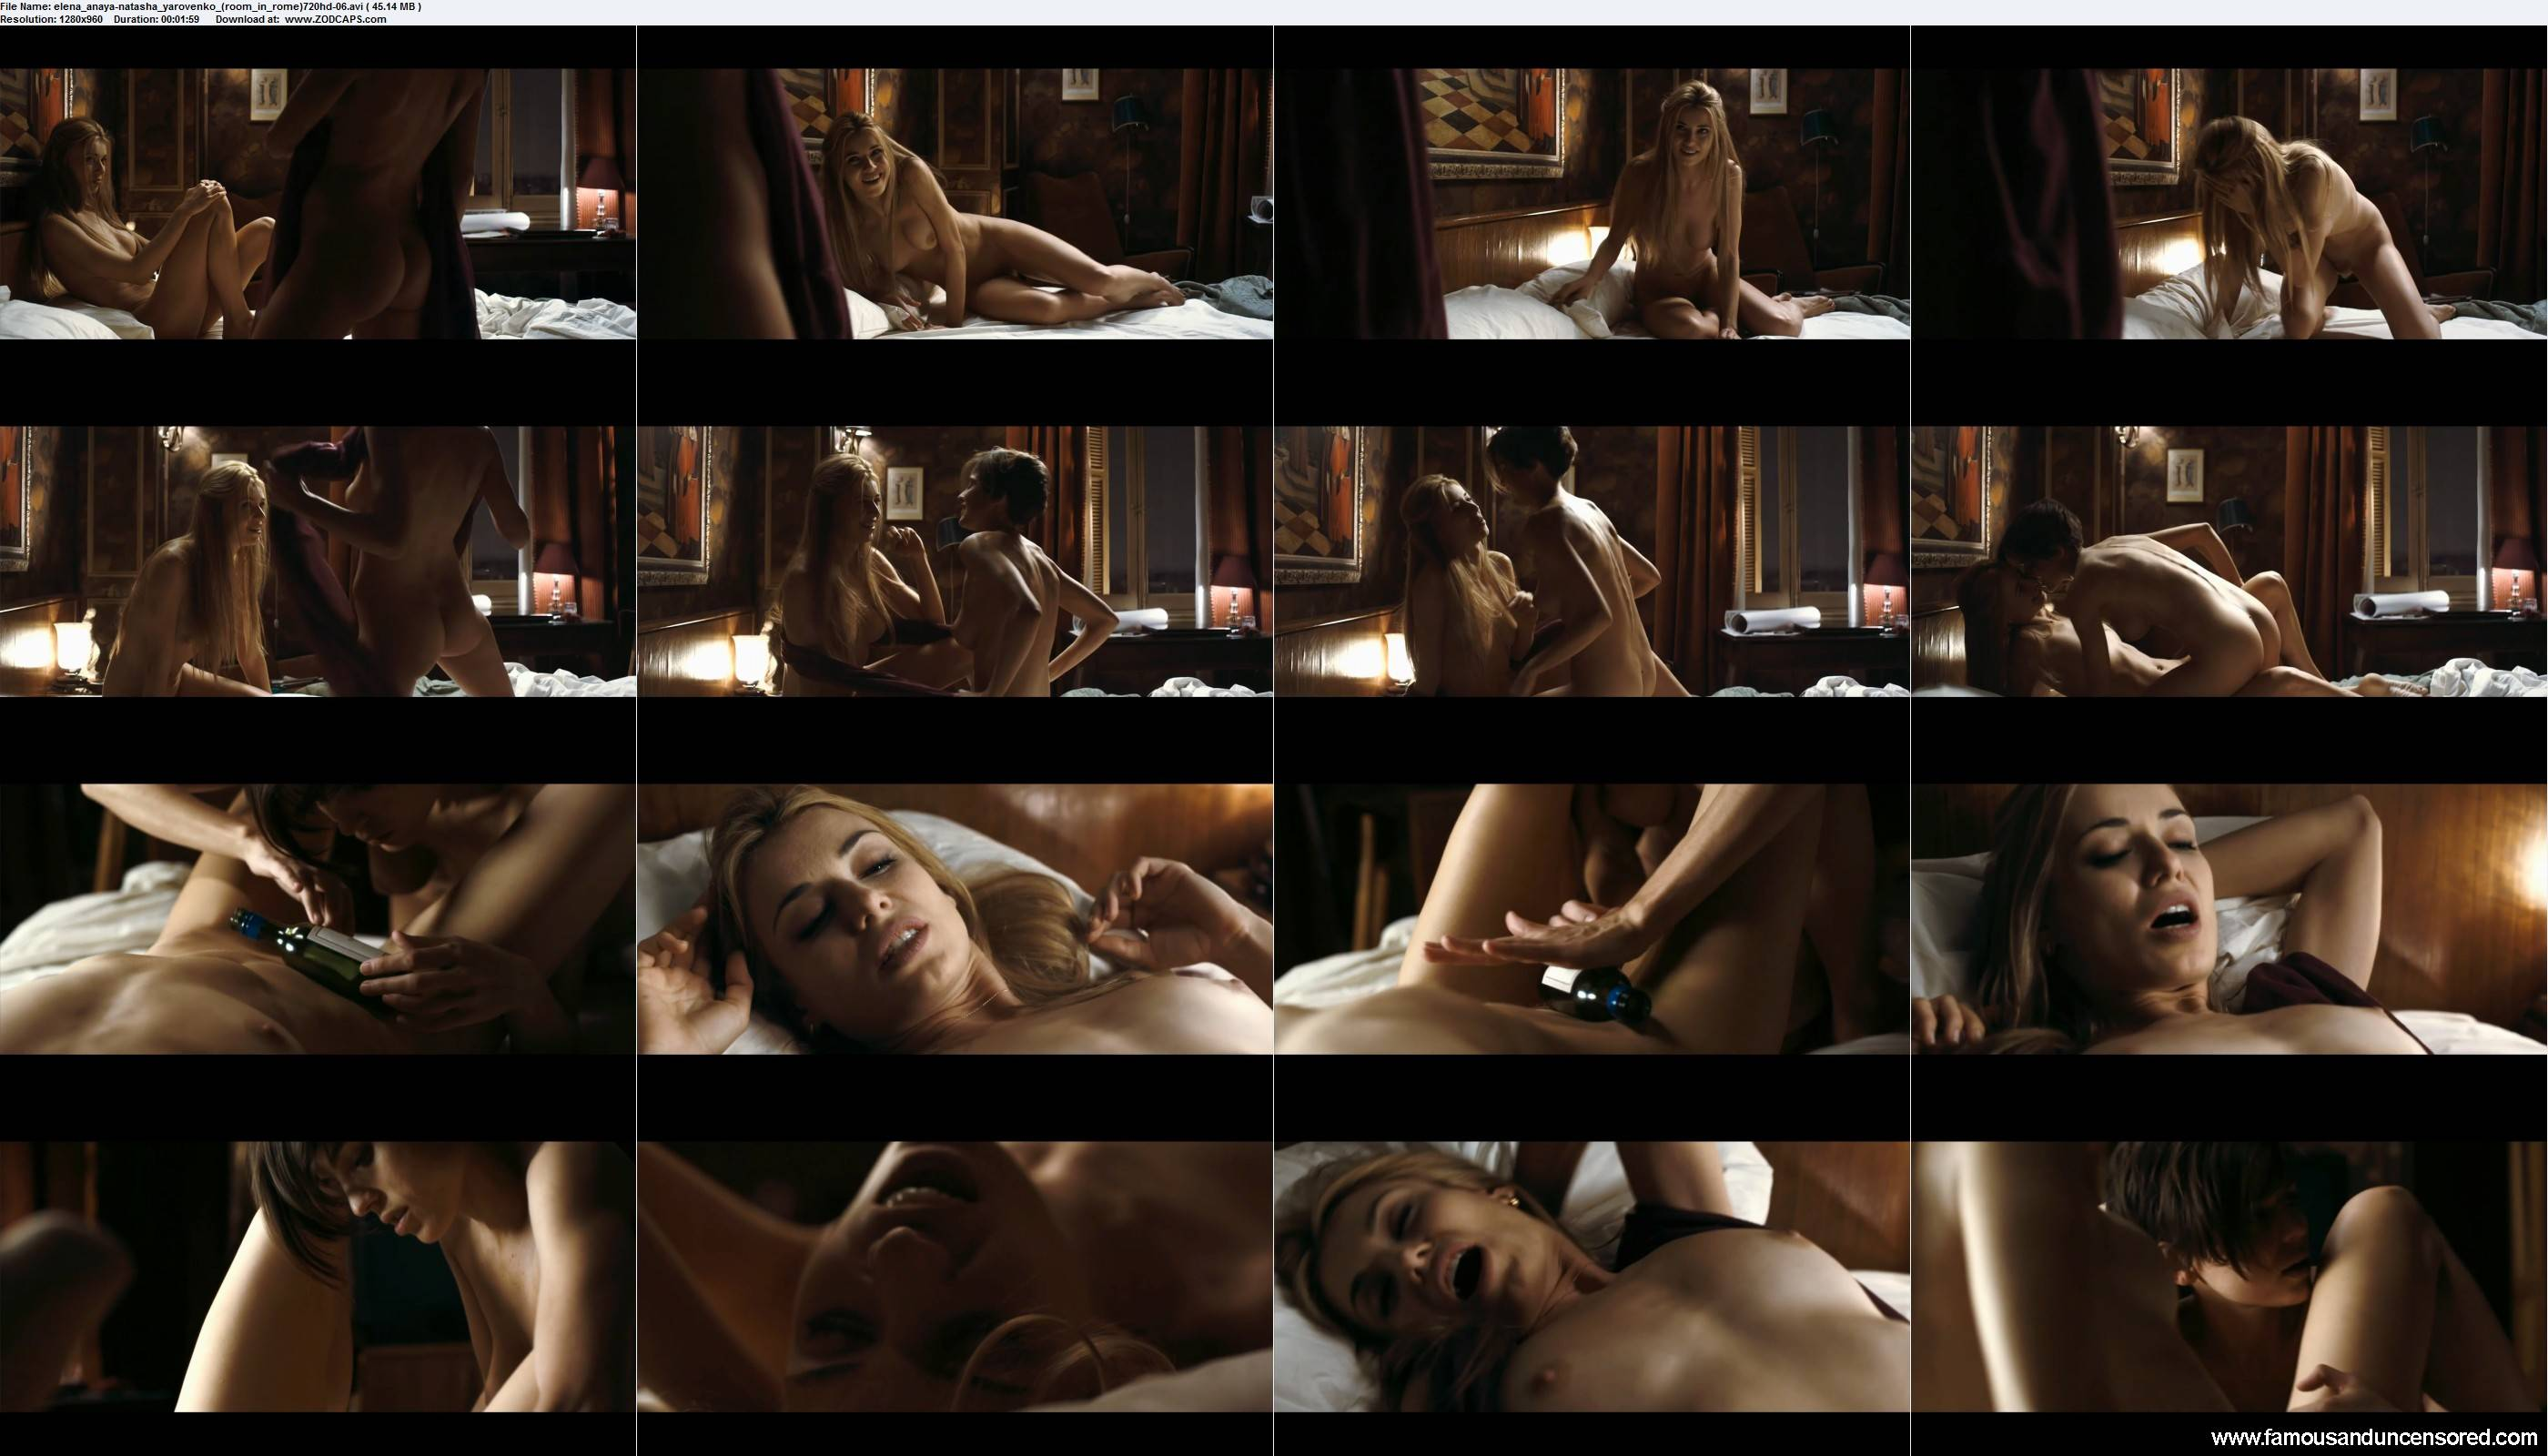 Rome simon woods sex scene sex archive